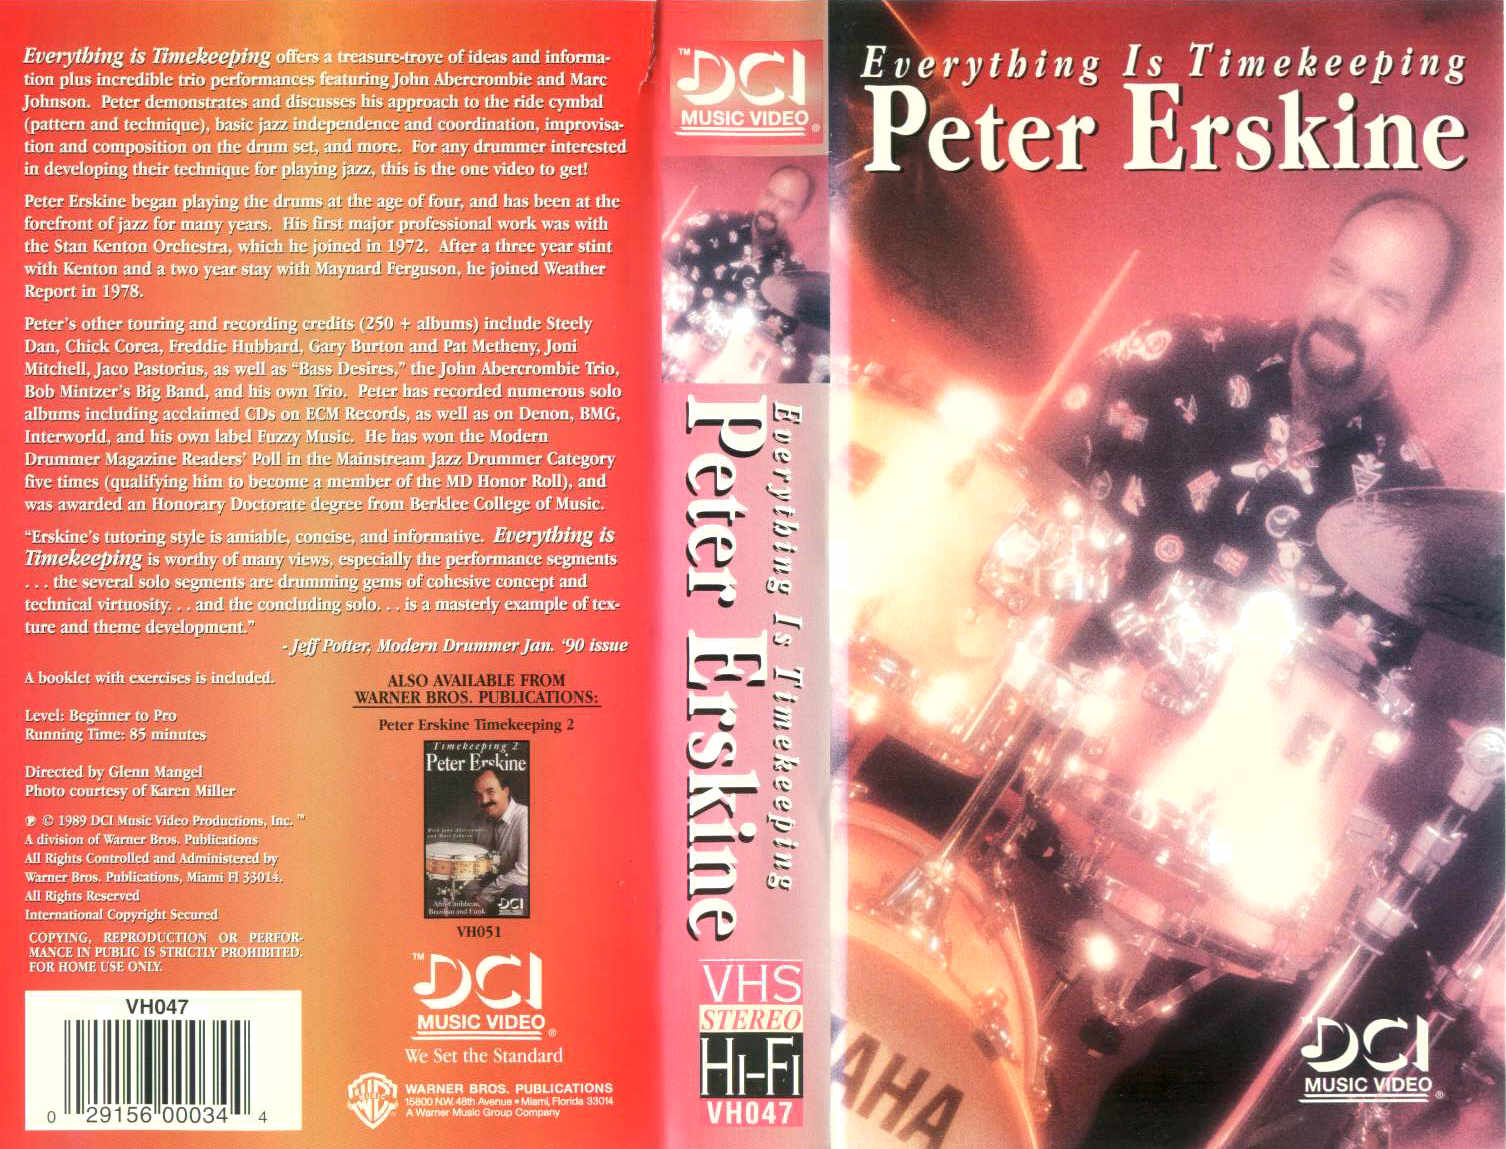 P. Erskine - Everything Is Timekeeping / videocassetta VHS